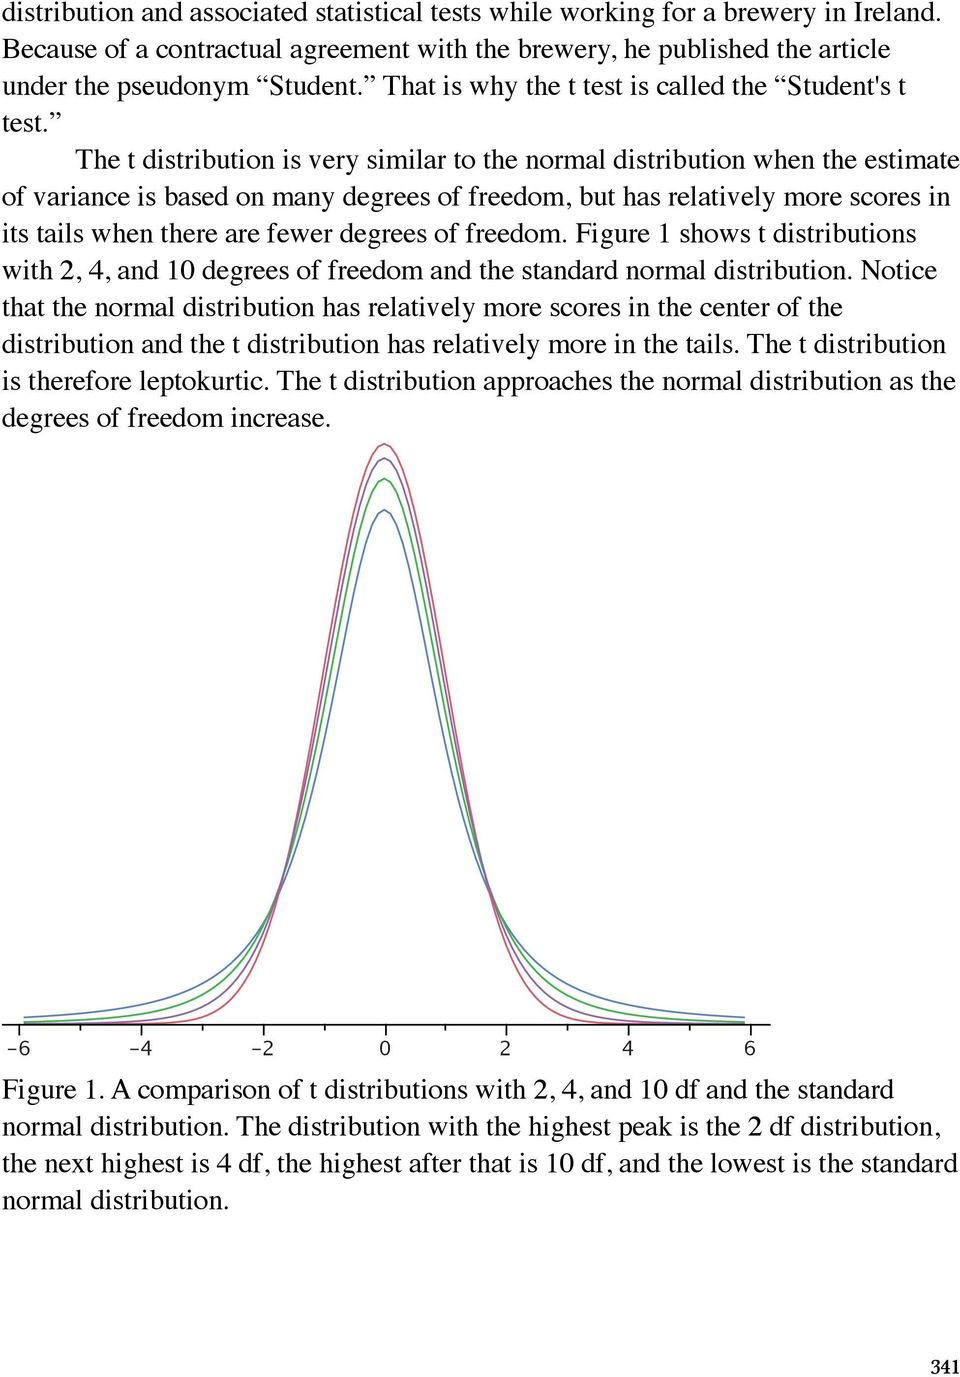 The t distribution is very similar to the normal distribution when the estimate of variance is based on many degrees of freedom, but has relatively more scores in its tails when there are fewer